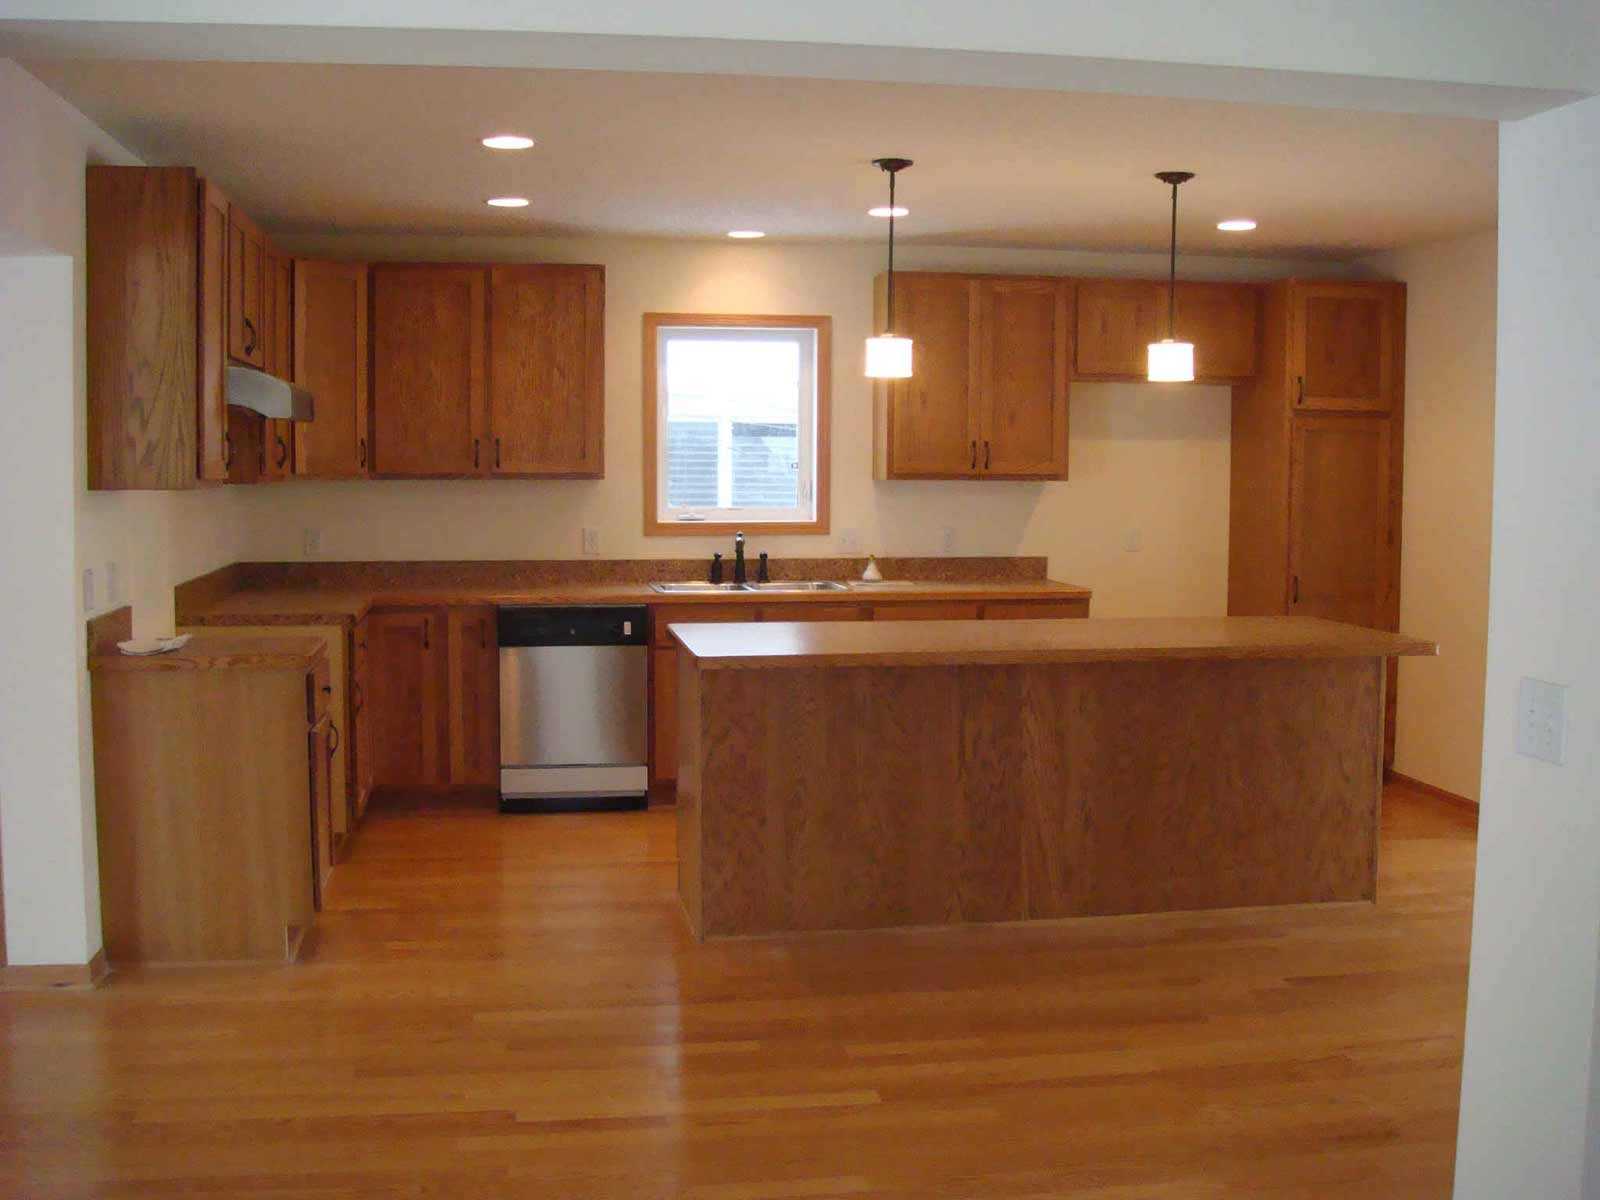 Laminate Flooring Kitchen Cabinets Decor Wood In With Hardwood For